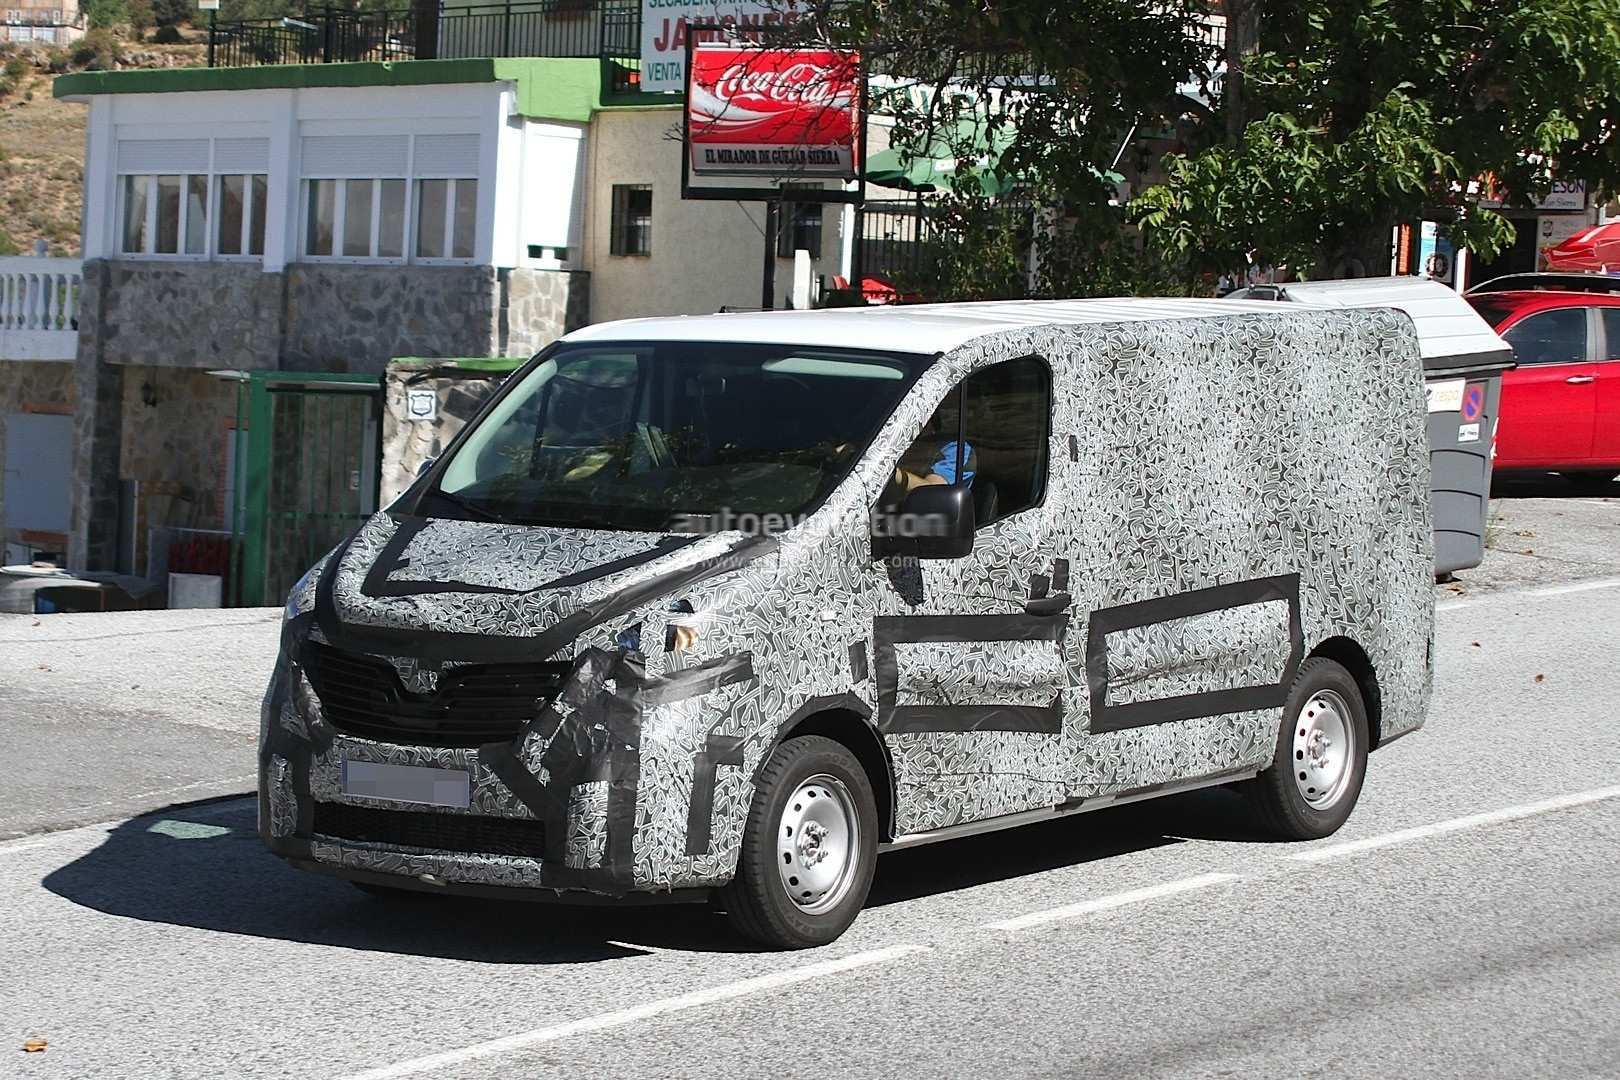 52 All New 2020 Renault Trafic Rumors for 2020 Renault Trafic